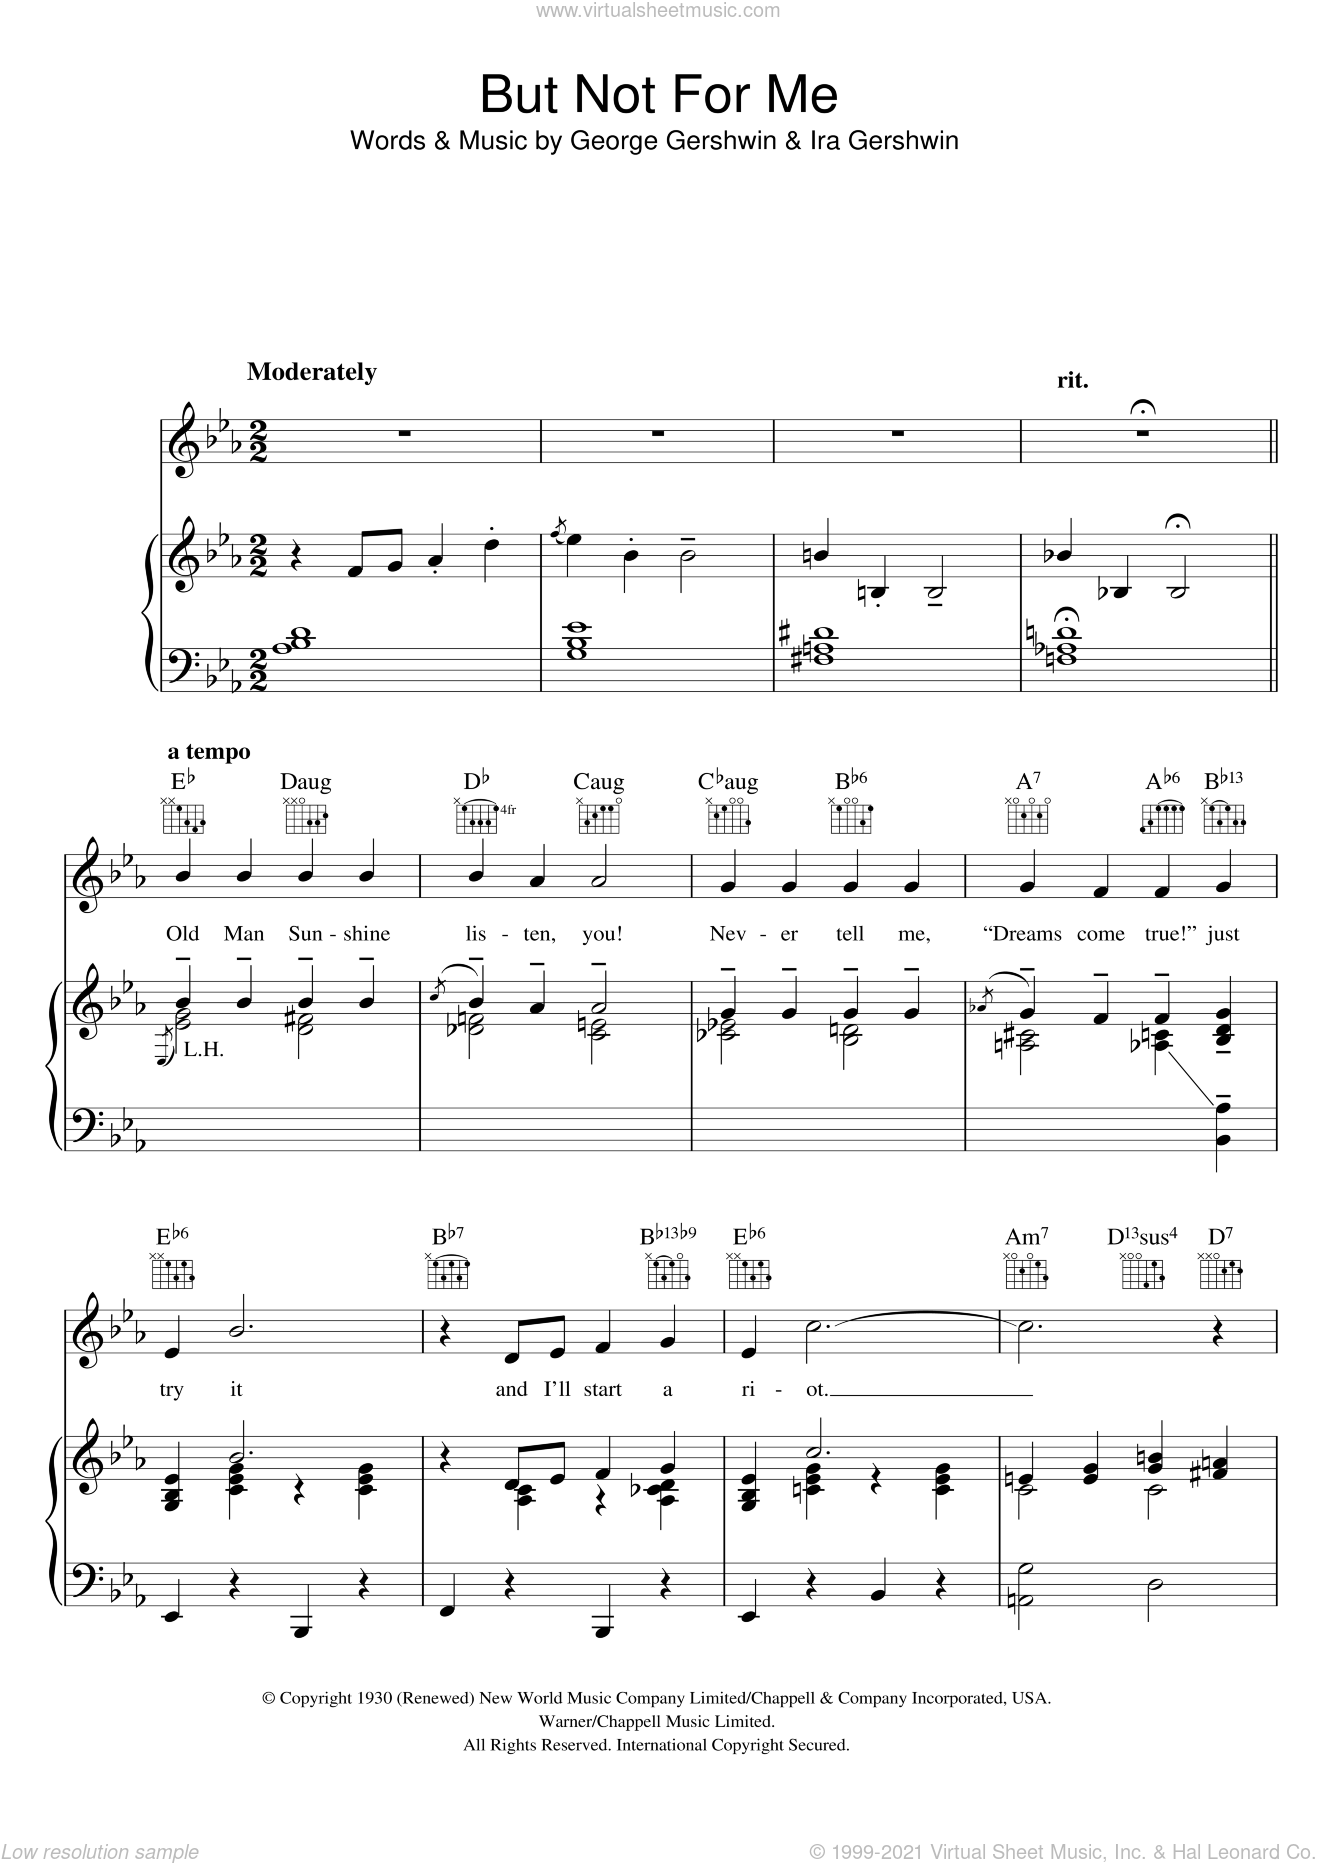 But Not For Me sheet music for voice, piano or guitar by Ira Gershwin